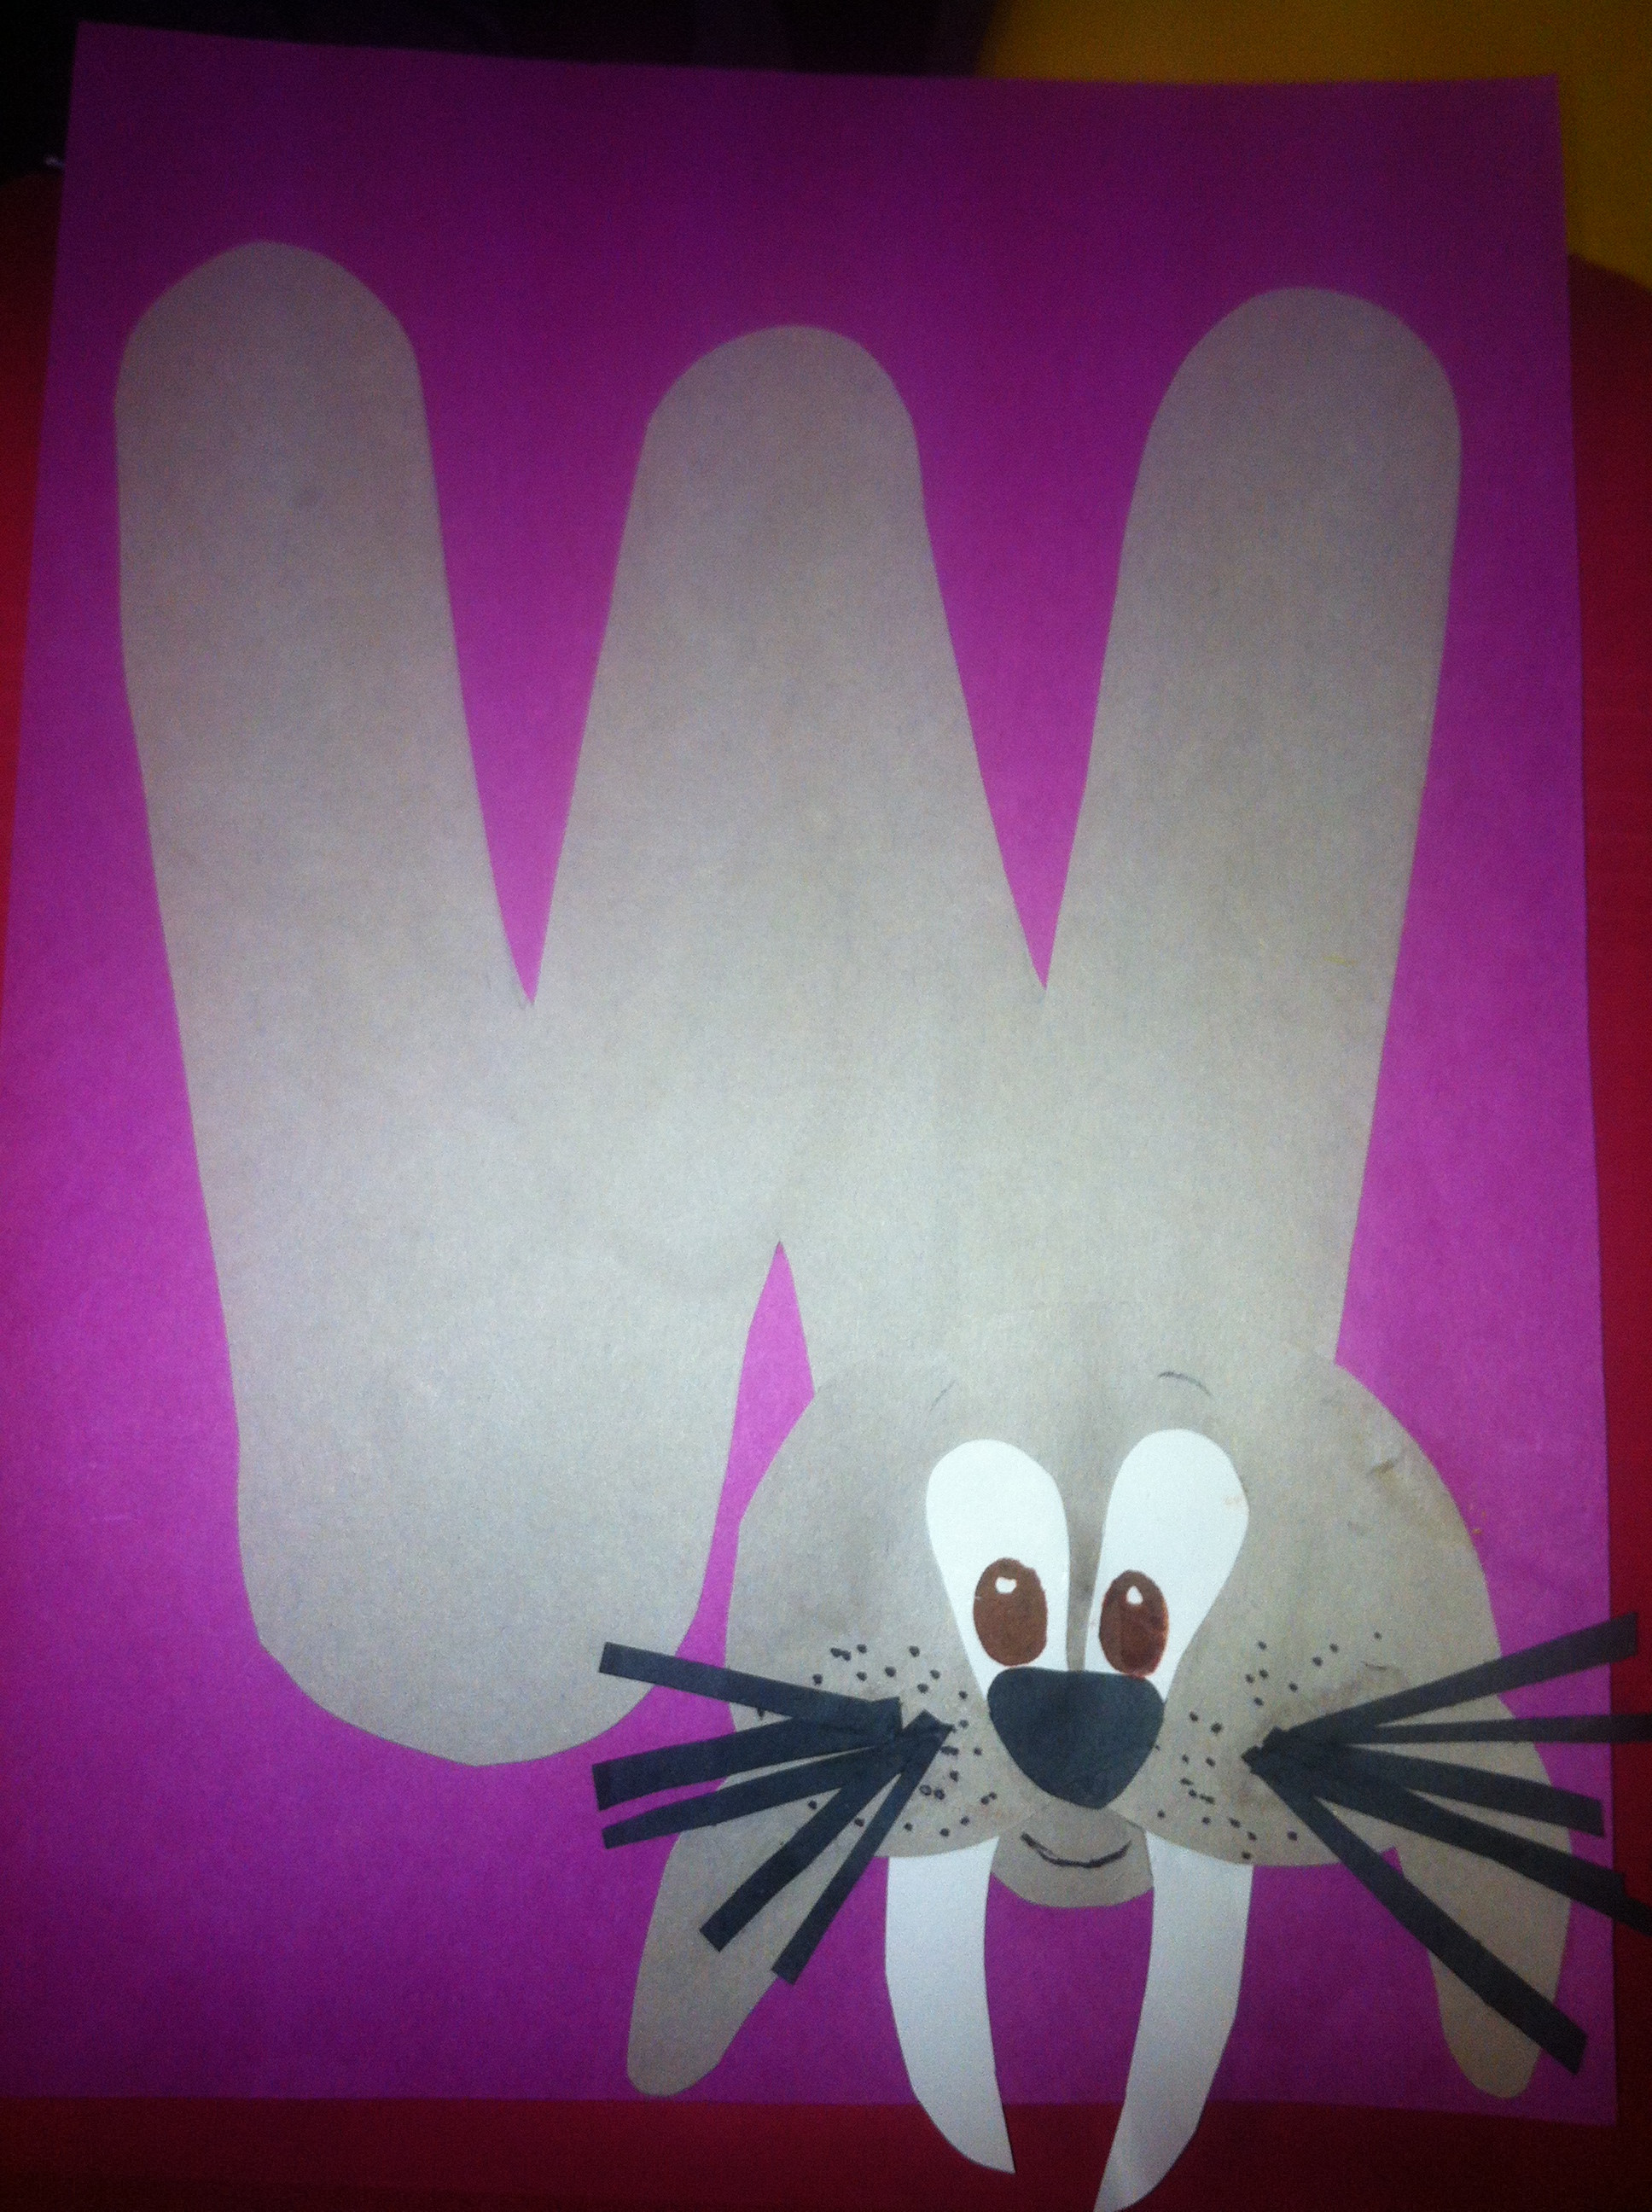 Best ideas about W Crafts For Preschoolers . Save or Pin Letter w crafts Now.